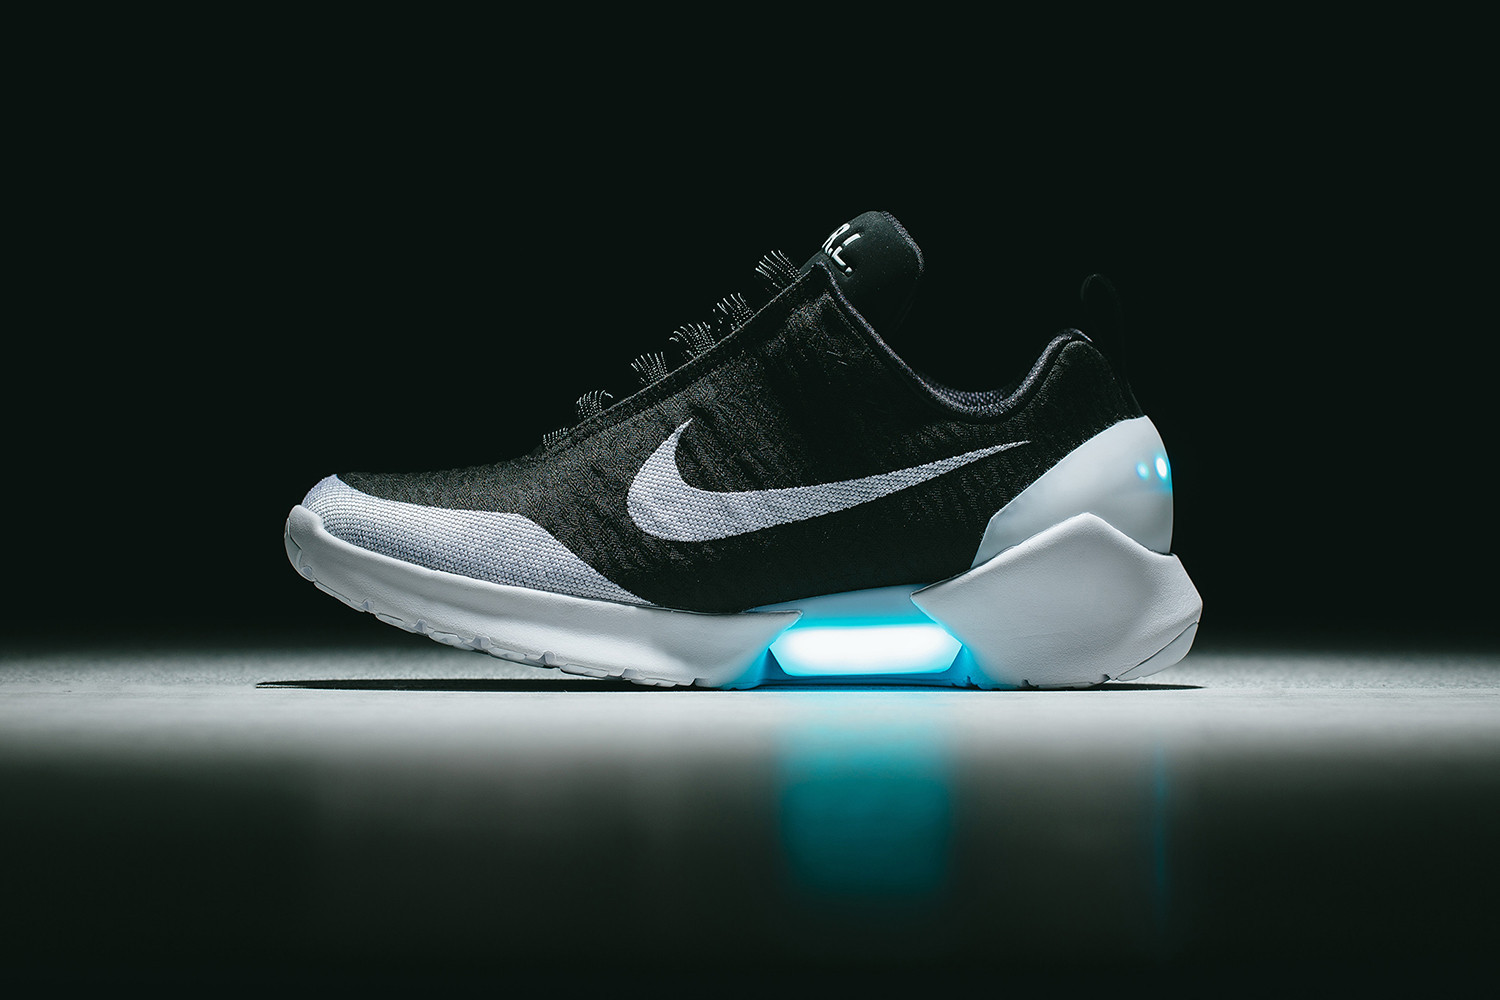 Nike HyperAdapt 2.0 Will Get A Wider